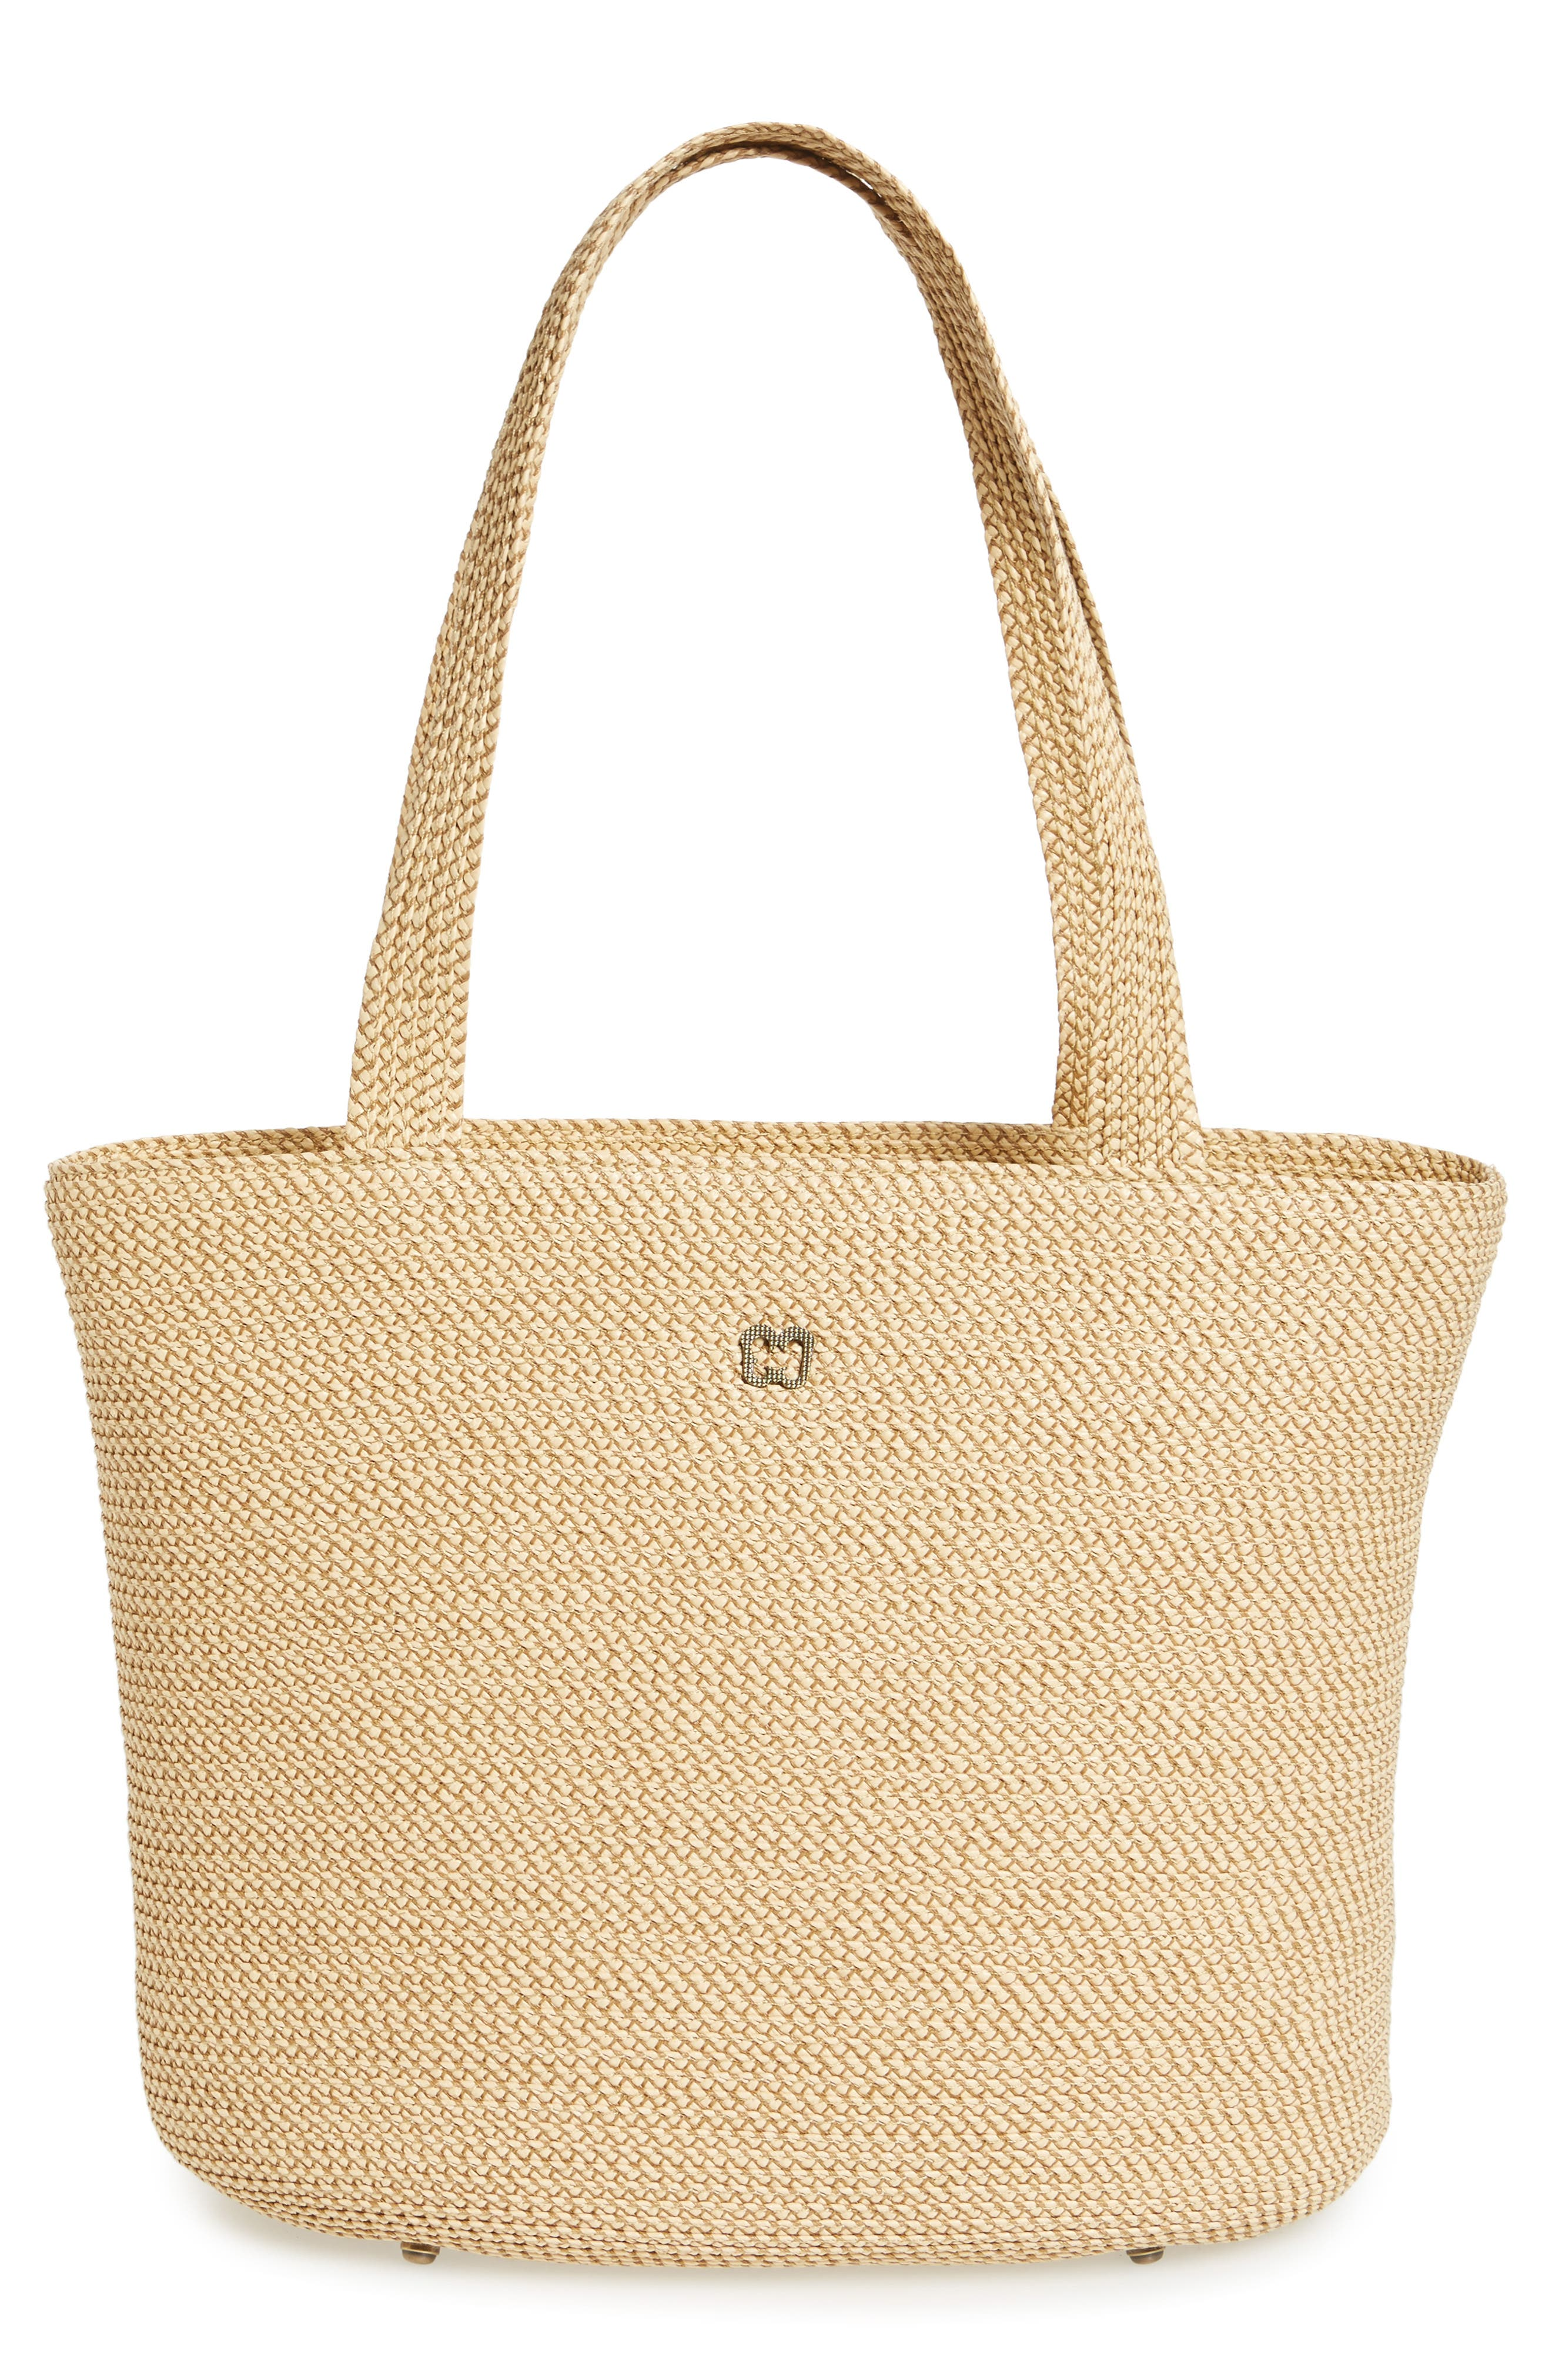 Squishee<sup>®</sup> Tote,                         Main,                         color, PEANUT